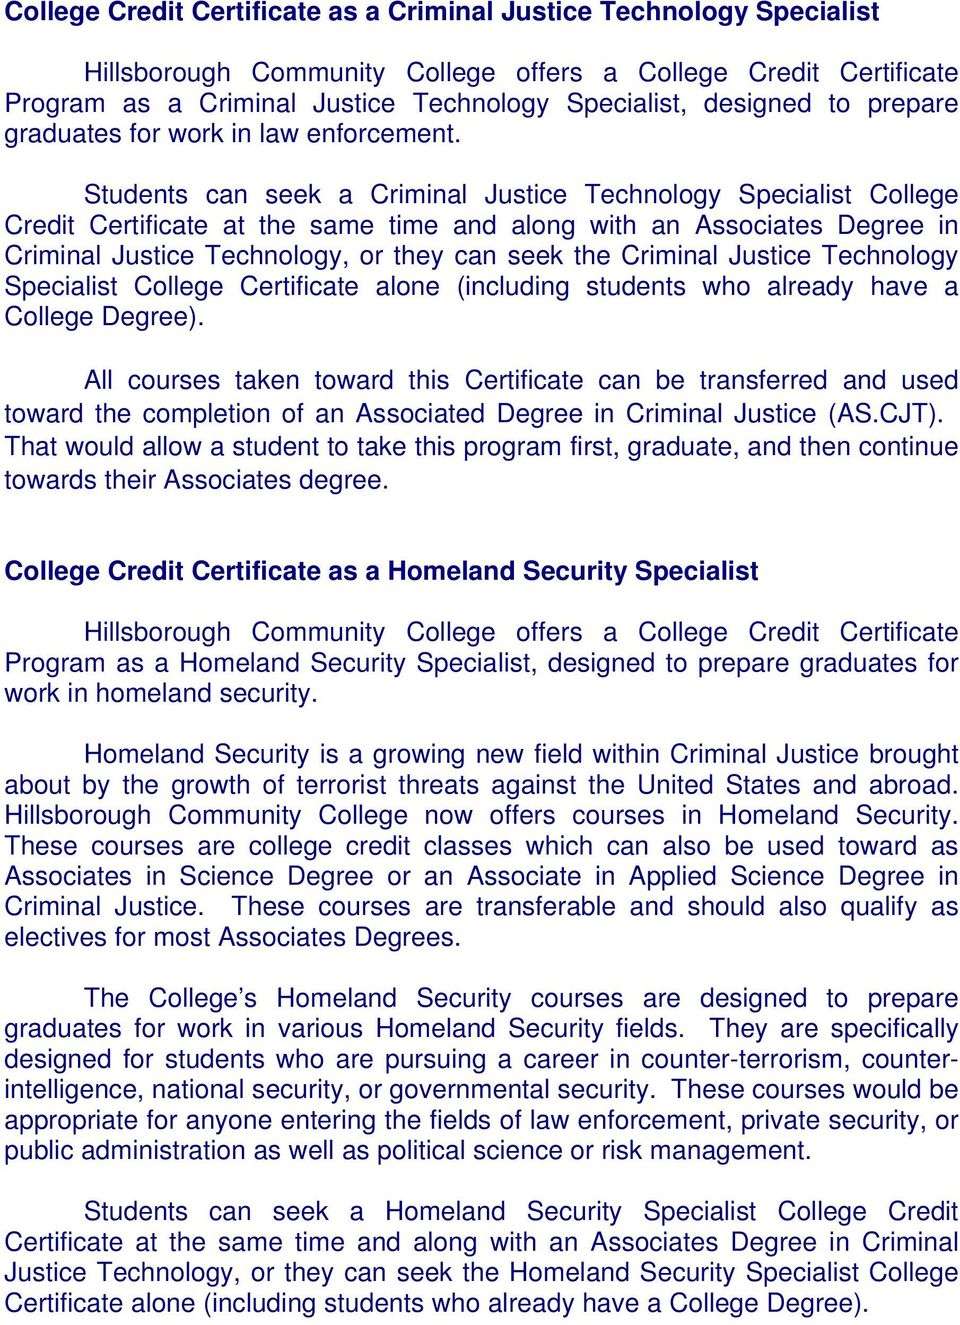 Students can seek a Criminal Justice Technology Specialist College Credit Certificate at the same time and along with an Associates Degree in Criminal Justice Technology, or they can seek the